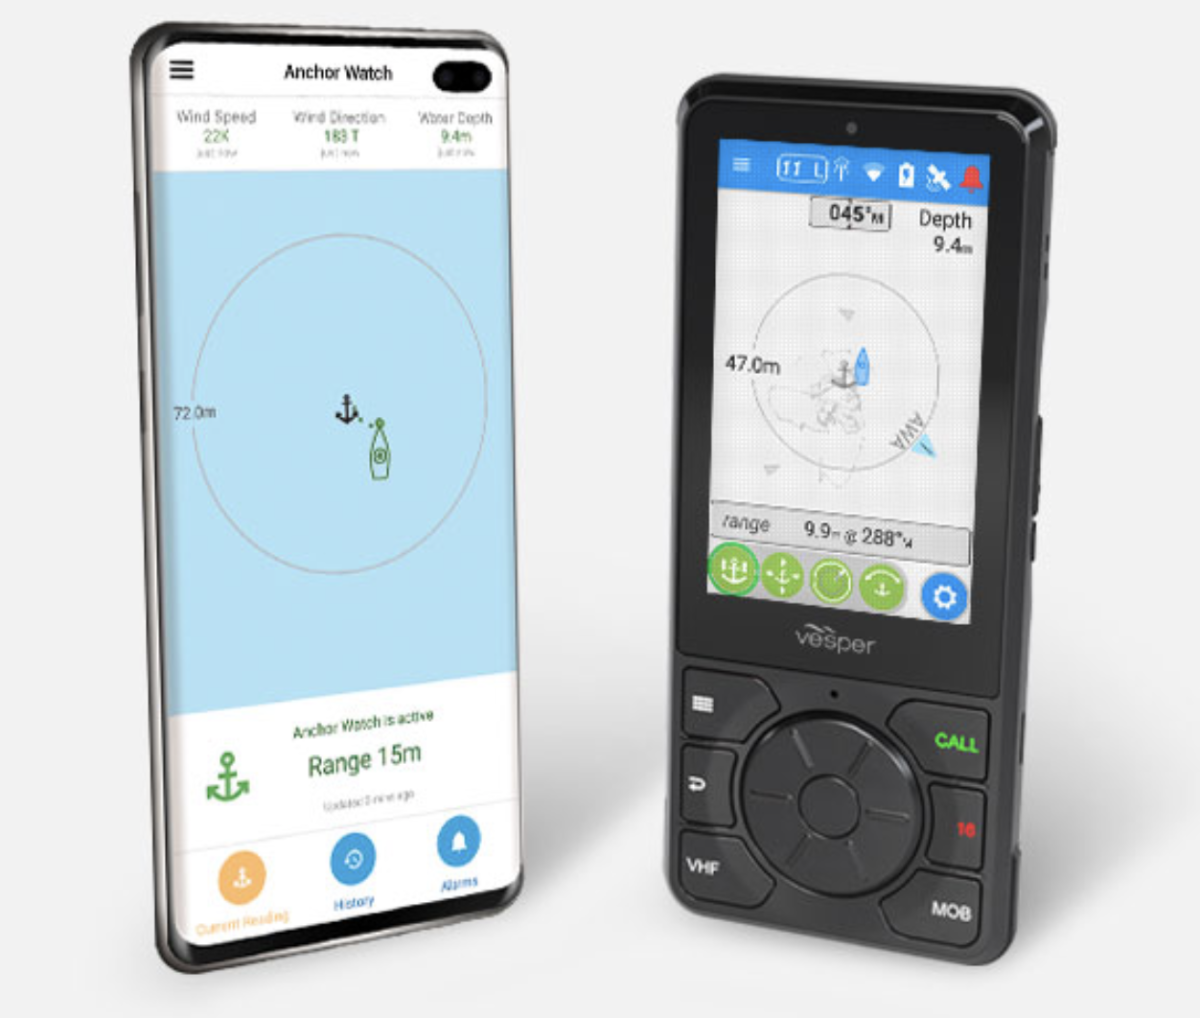 Vesper's Cortex (right) has a familiar shape for smartphone users, with intuitive buttons and functions.